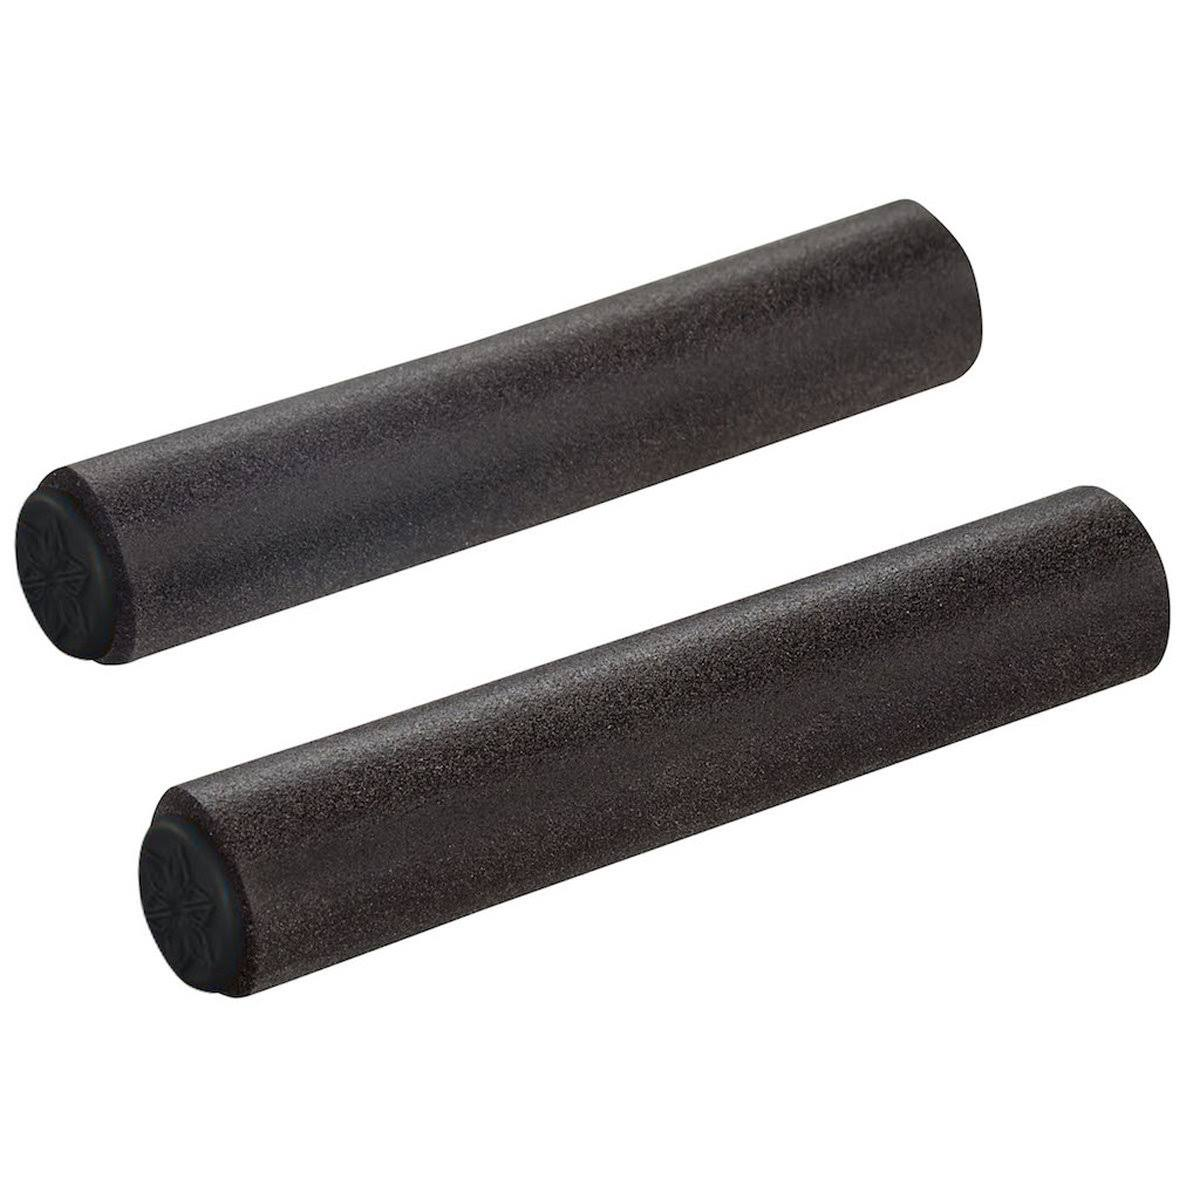 Supacaz Grip Silicone Grips - Black, X-Large